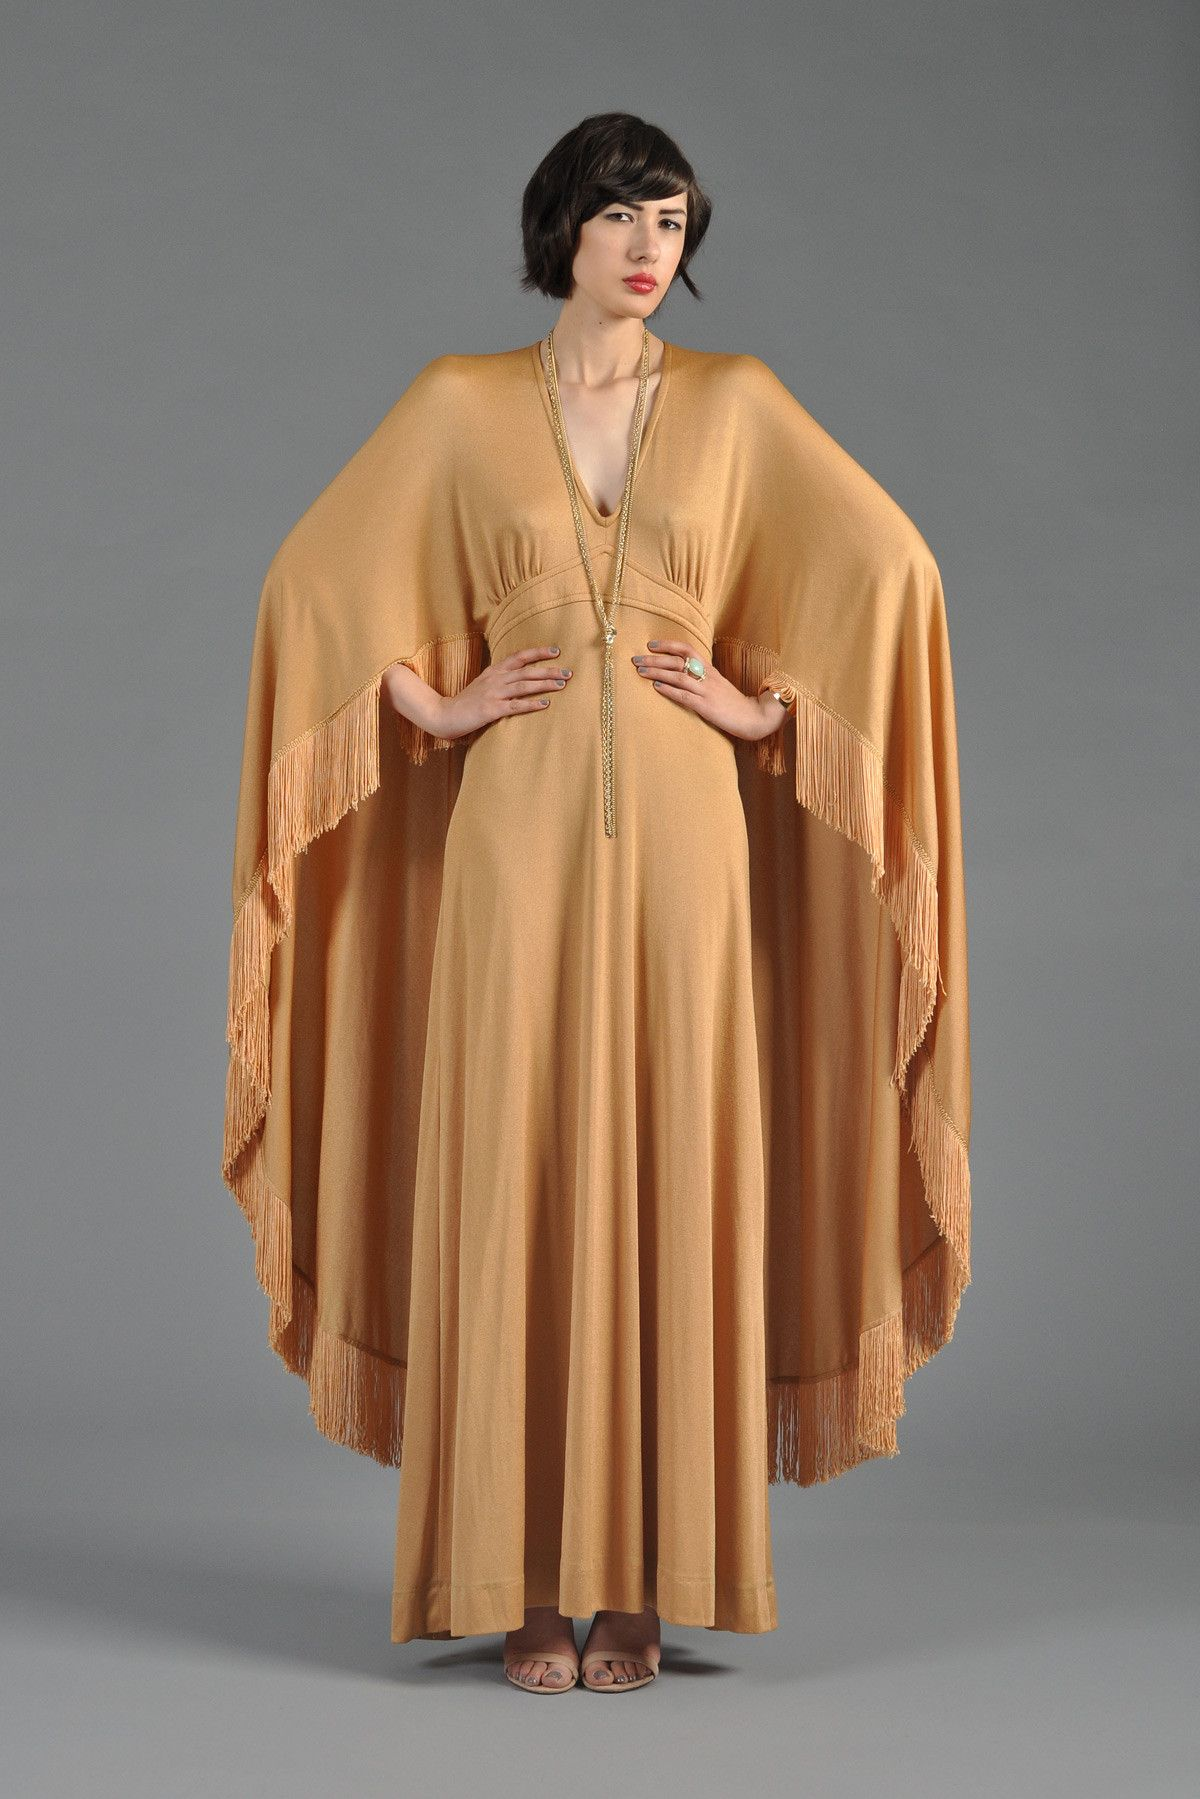 Golden draped maxi gown with fringed cape my style pinterest